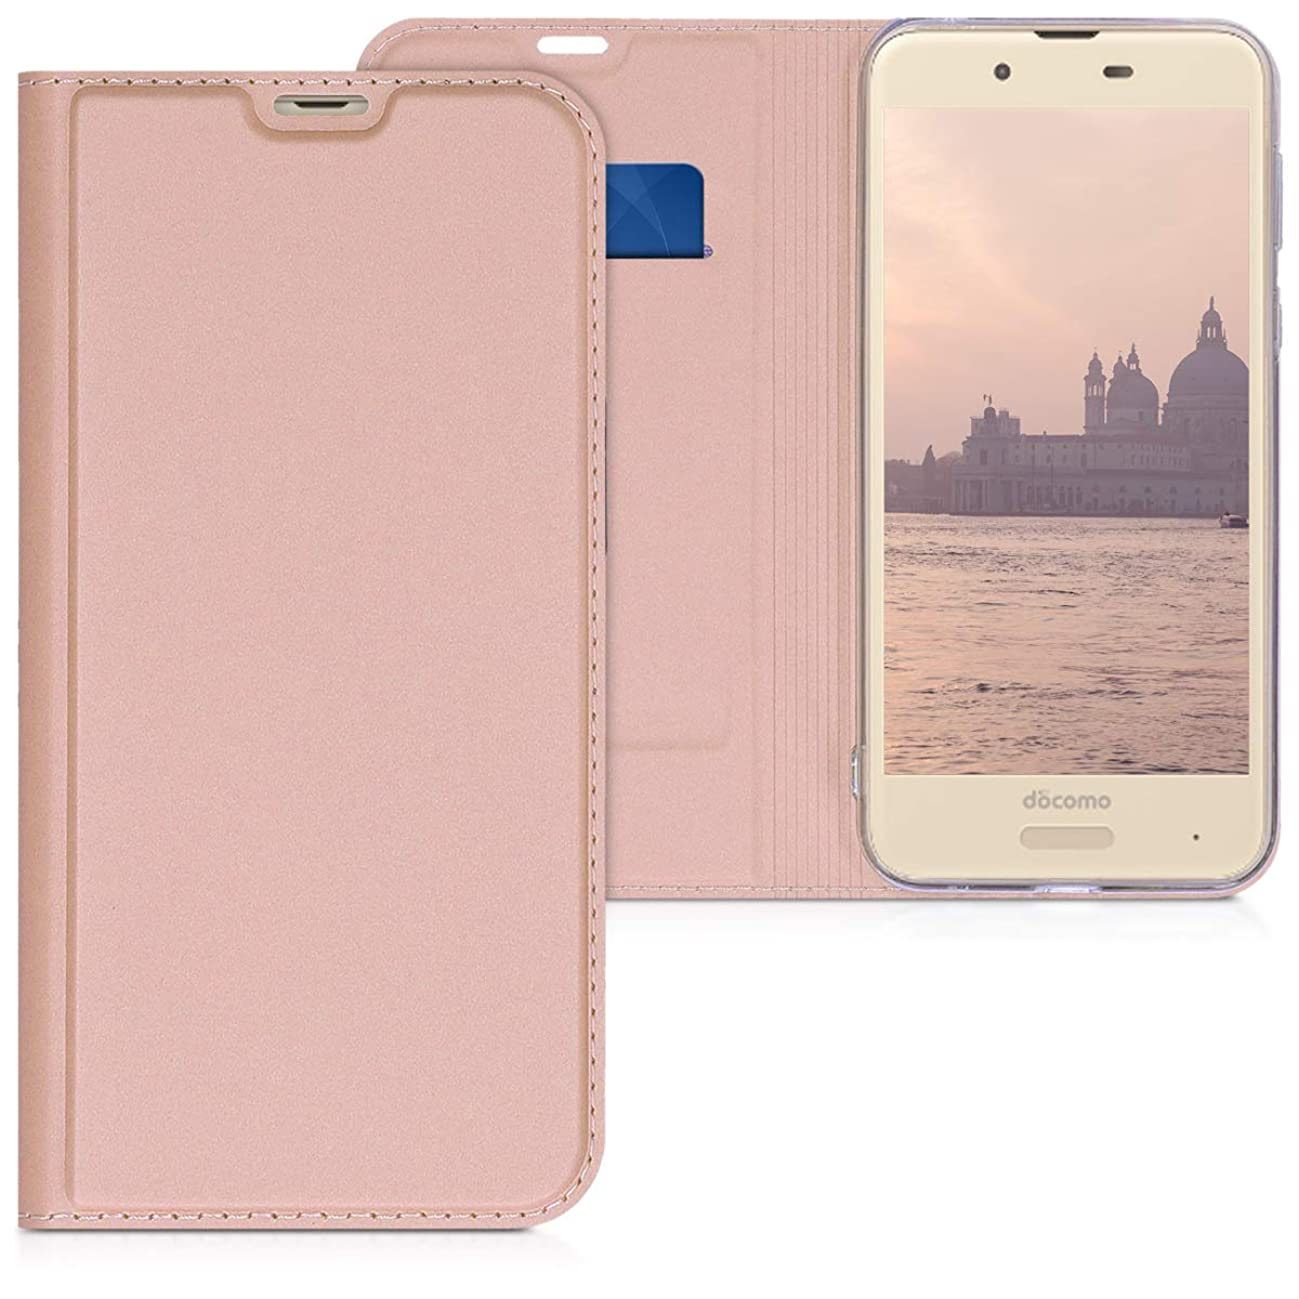 kwmobile Flip Case for Sharp AQUOS Sense2 (SH-01L) - Smooth PU Leather Wallet Folio Cover with Stand Feature - Rose Gold